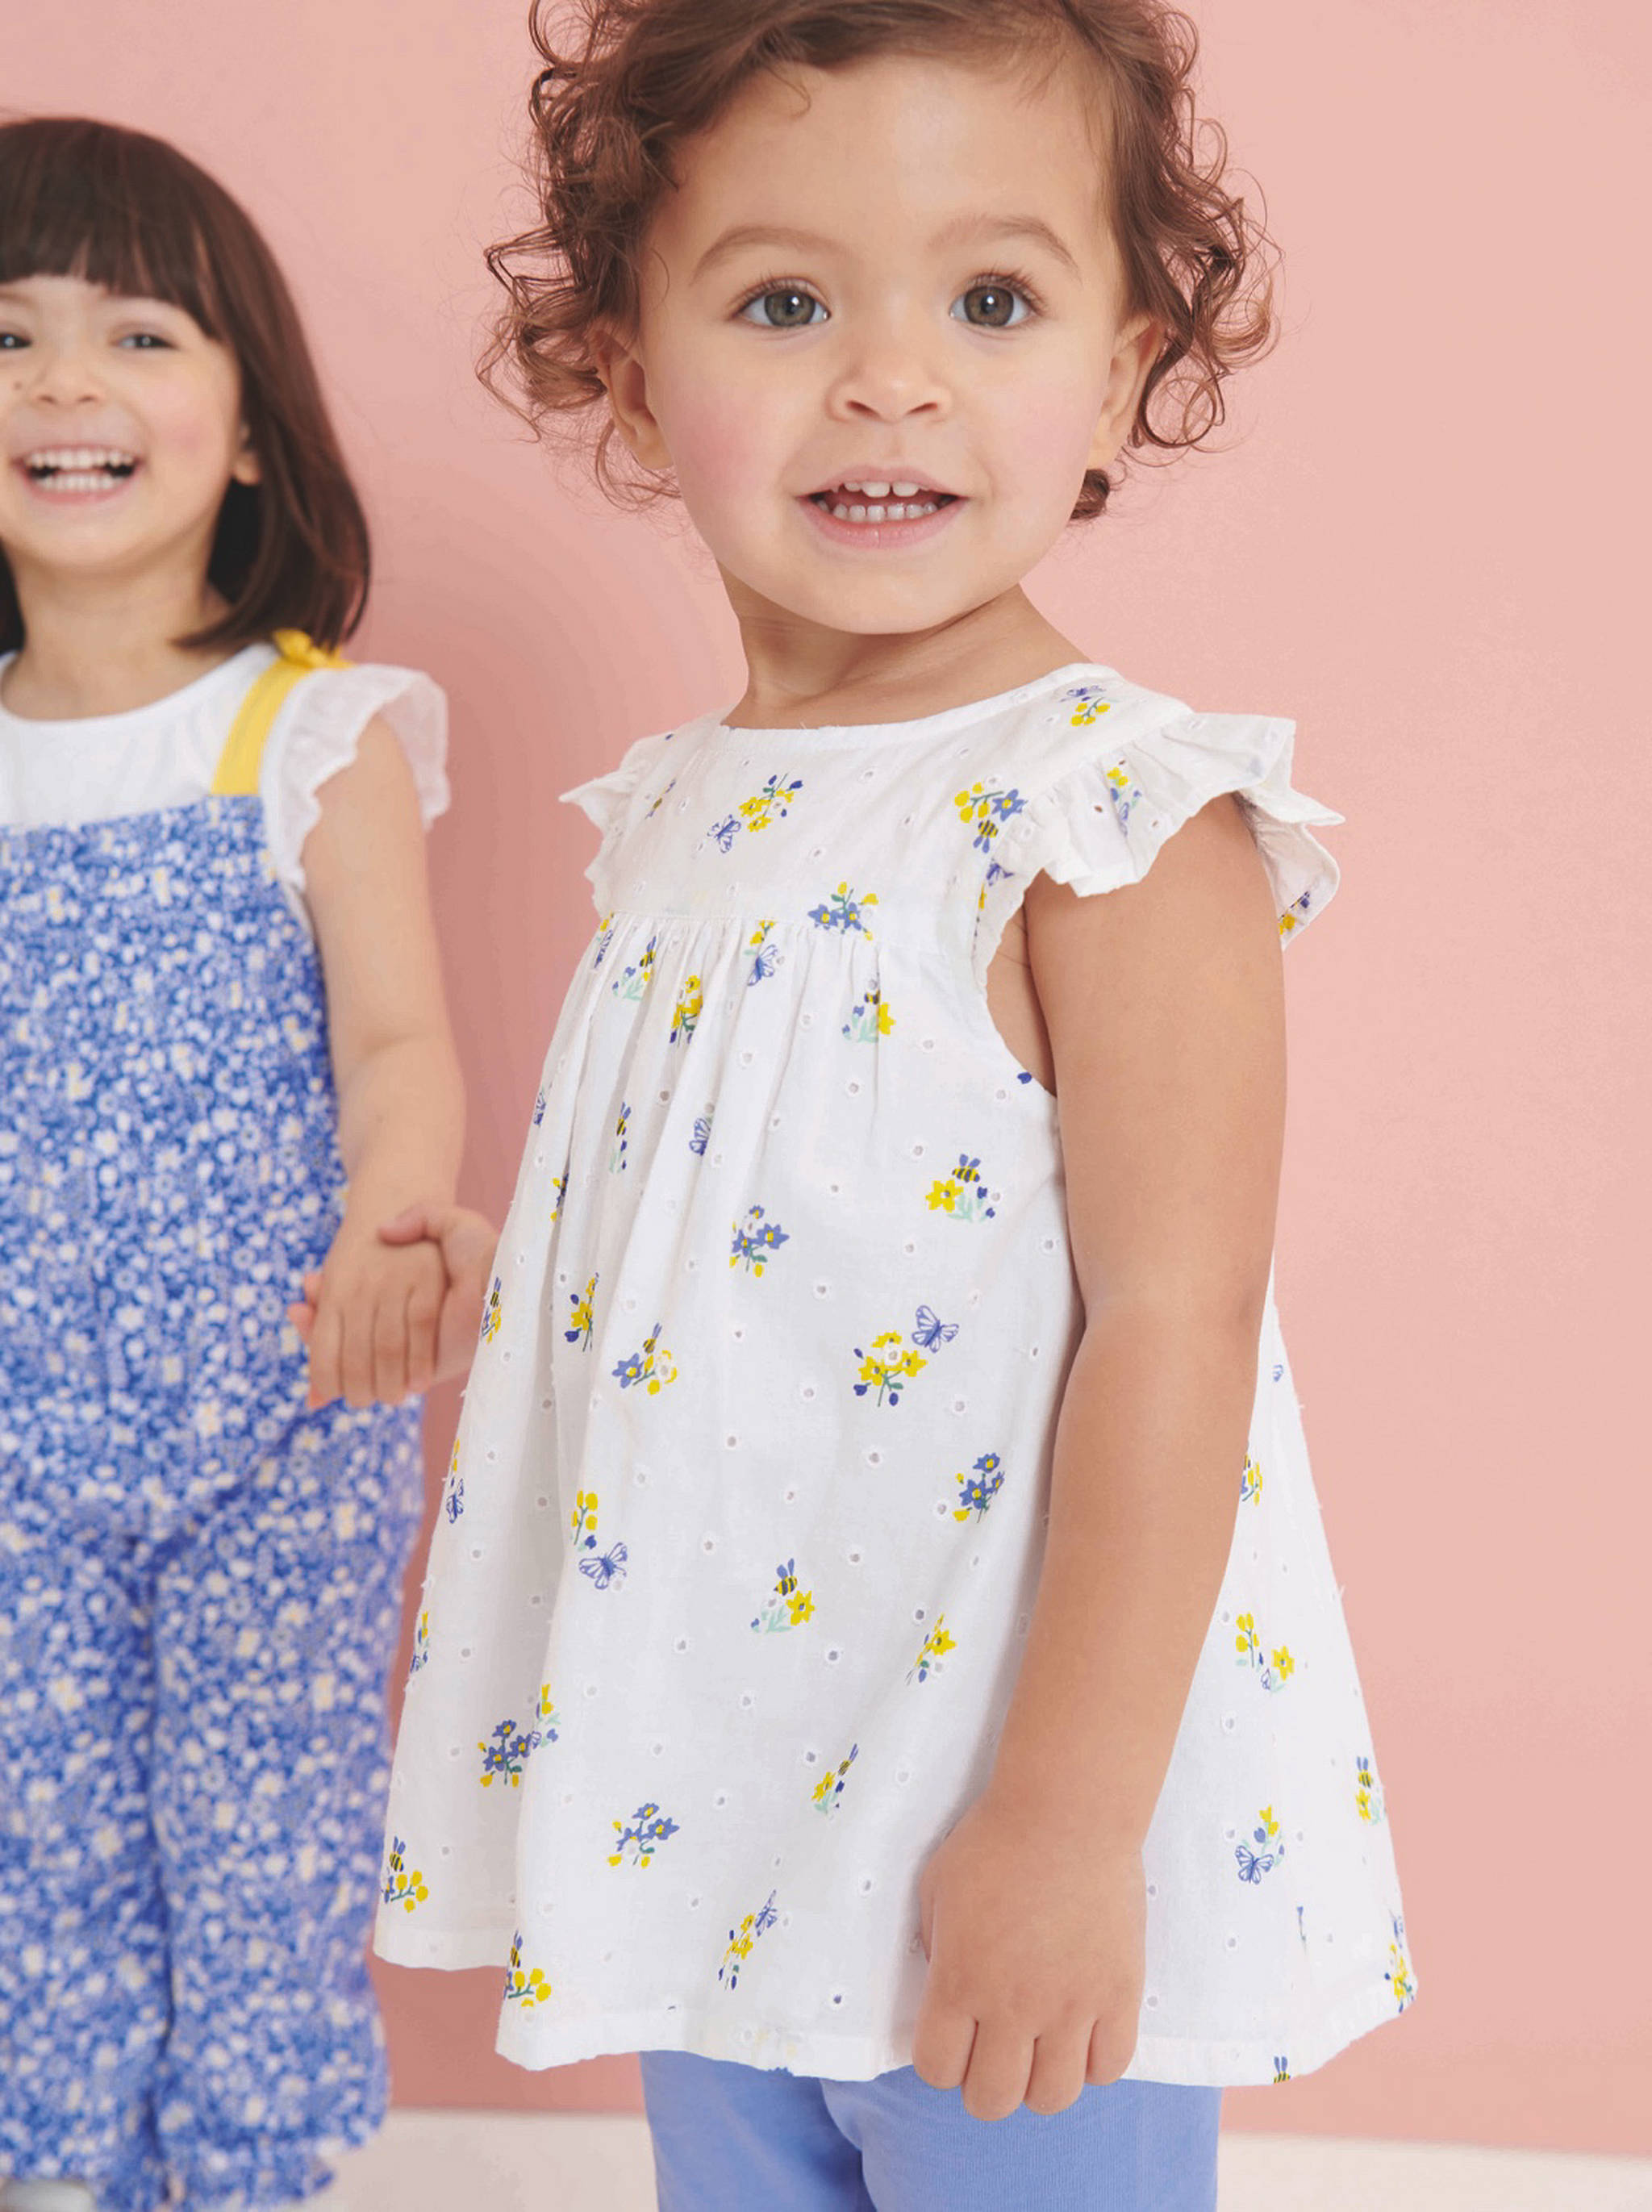 A little girl dressed in a white top with yellow flowers and blue trousers